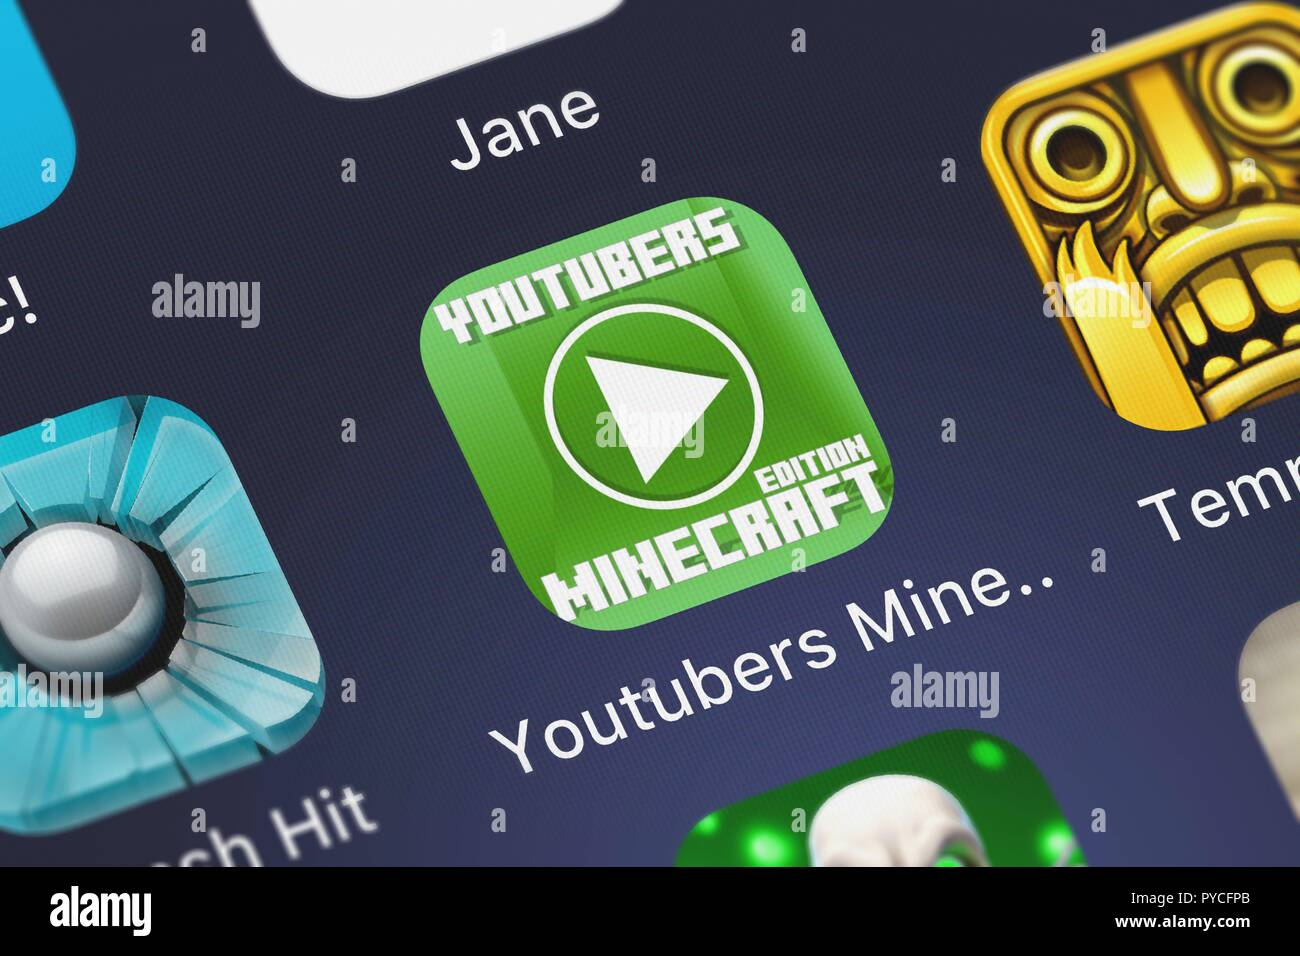 youtubers minecraft edition stock